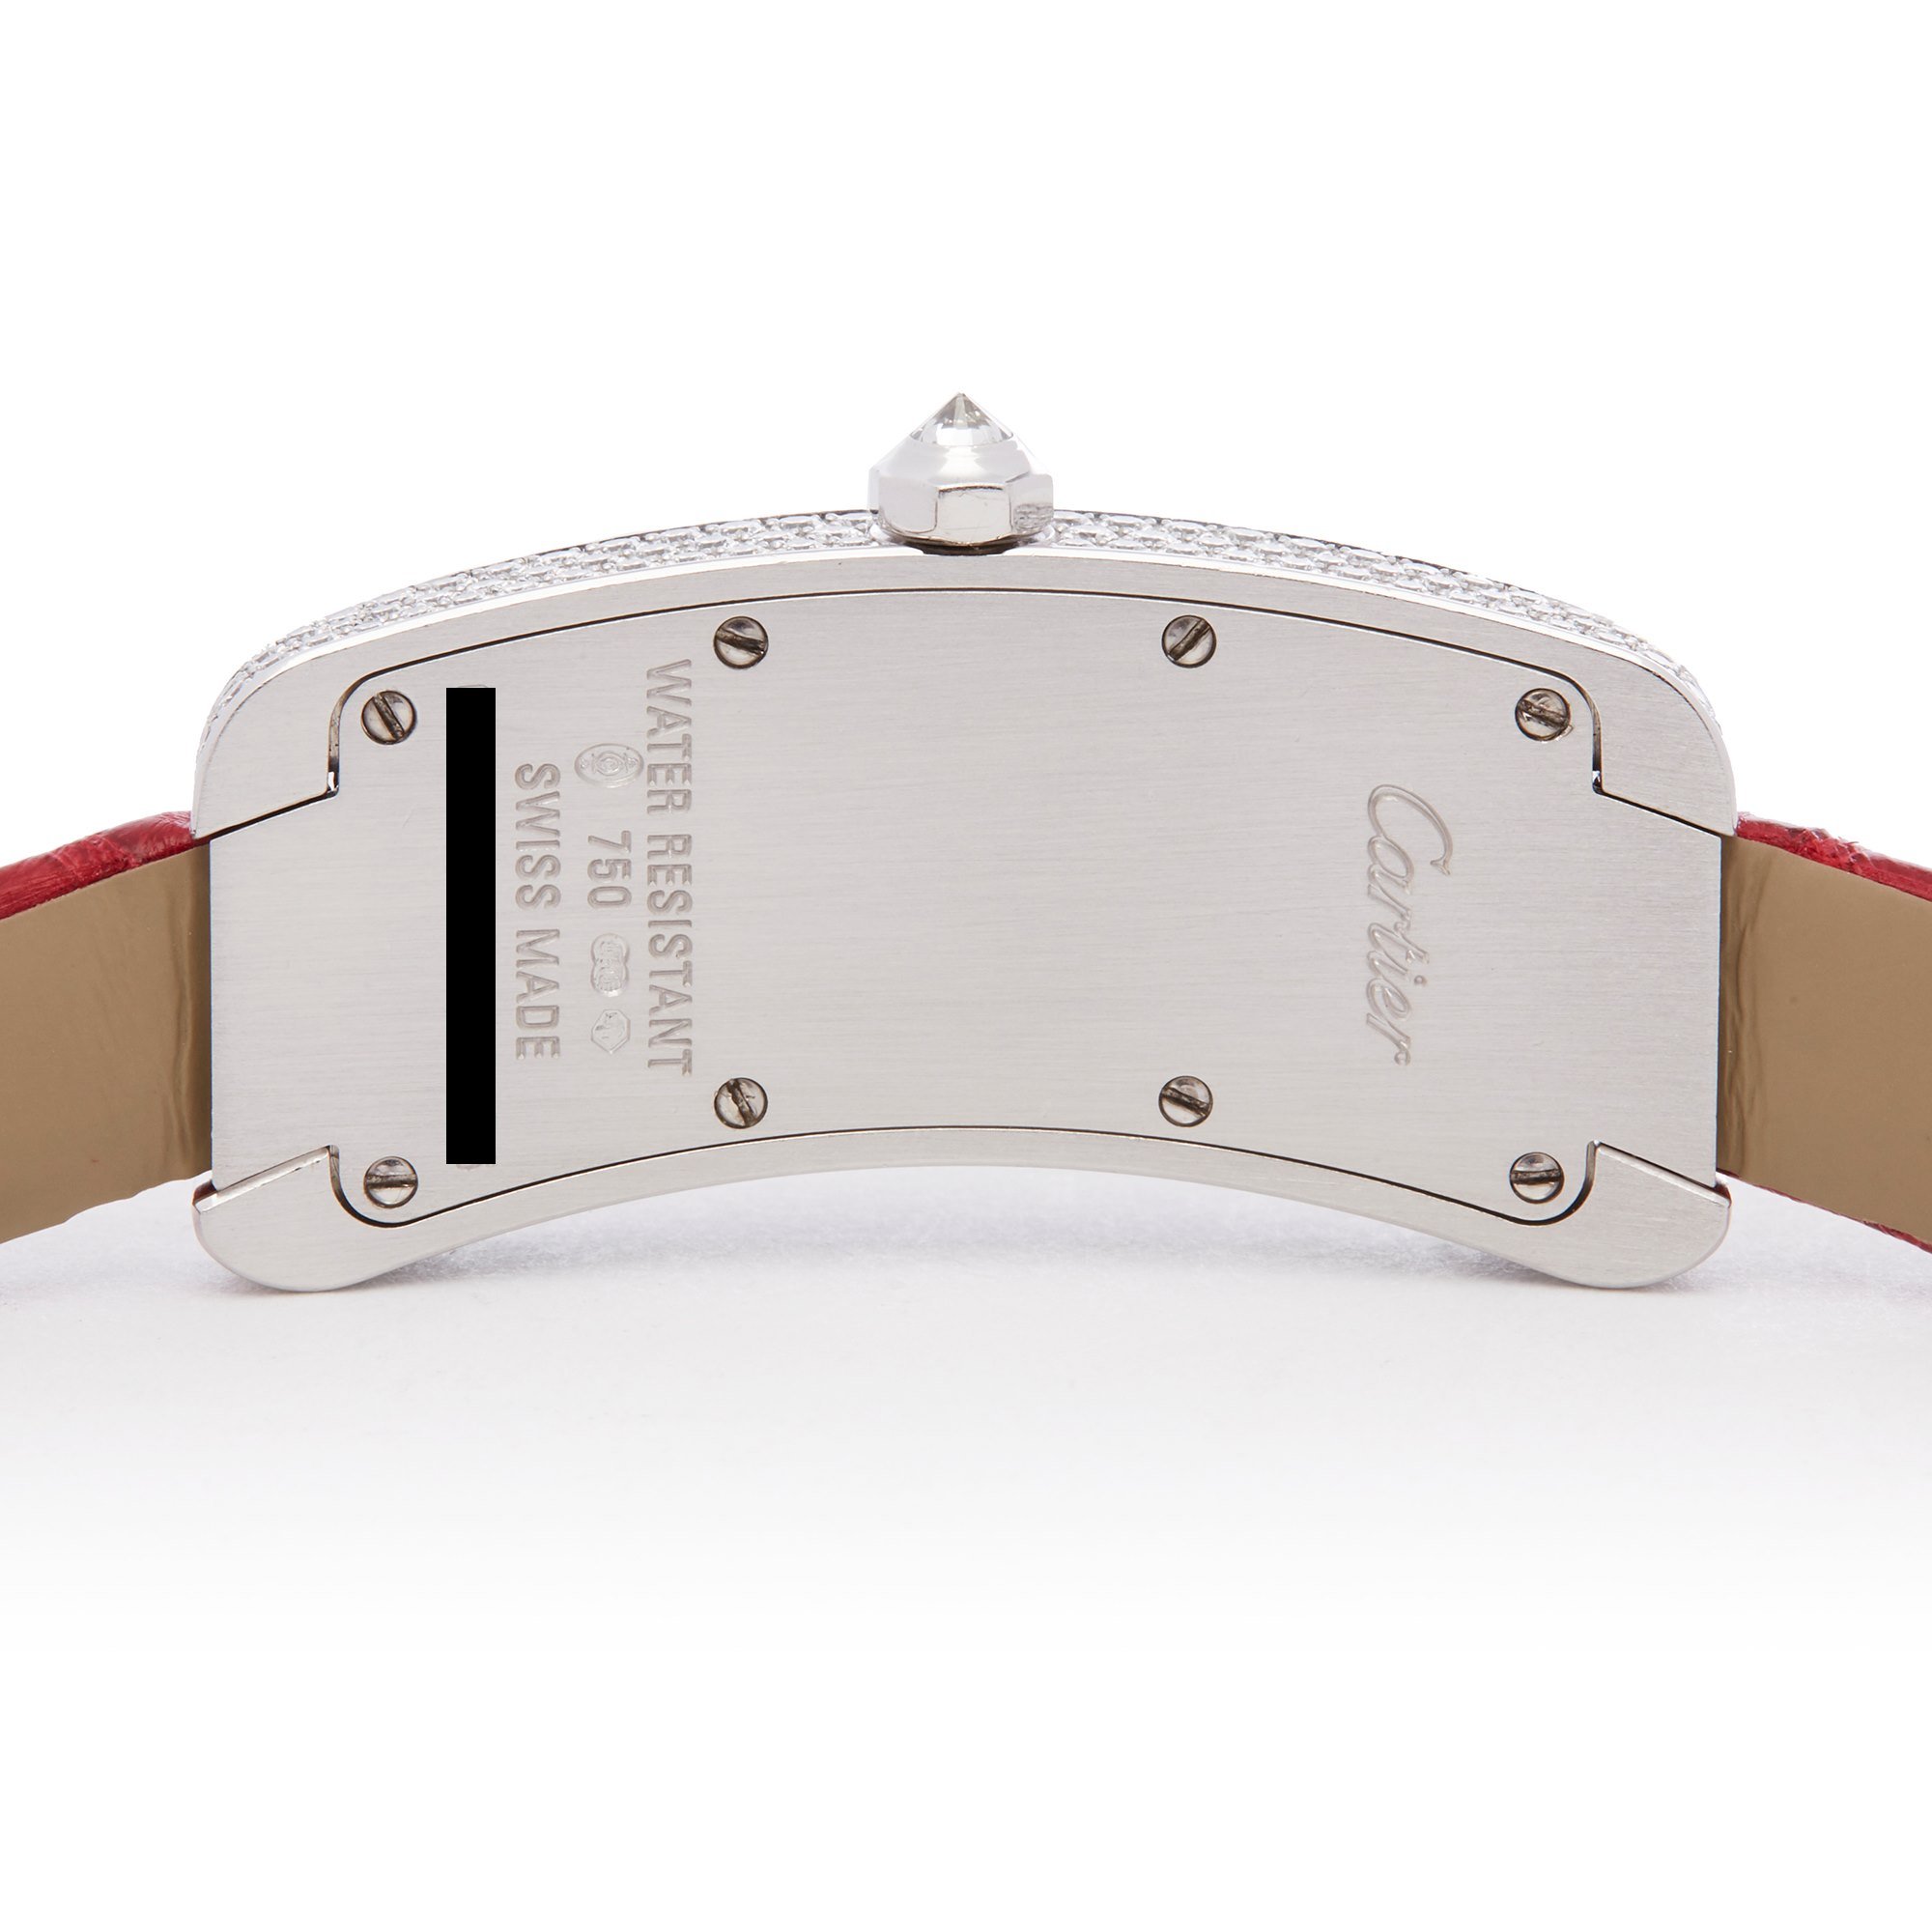 Lot 26 - Cartier Tank Americaine WJ300950 or 2625 Ladies White Gold Curved Tank S Diamond Watch